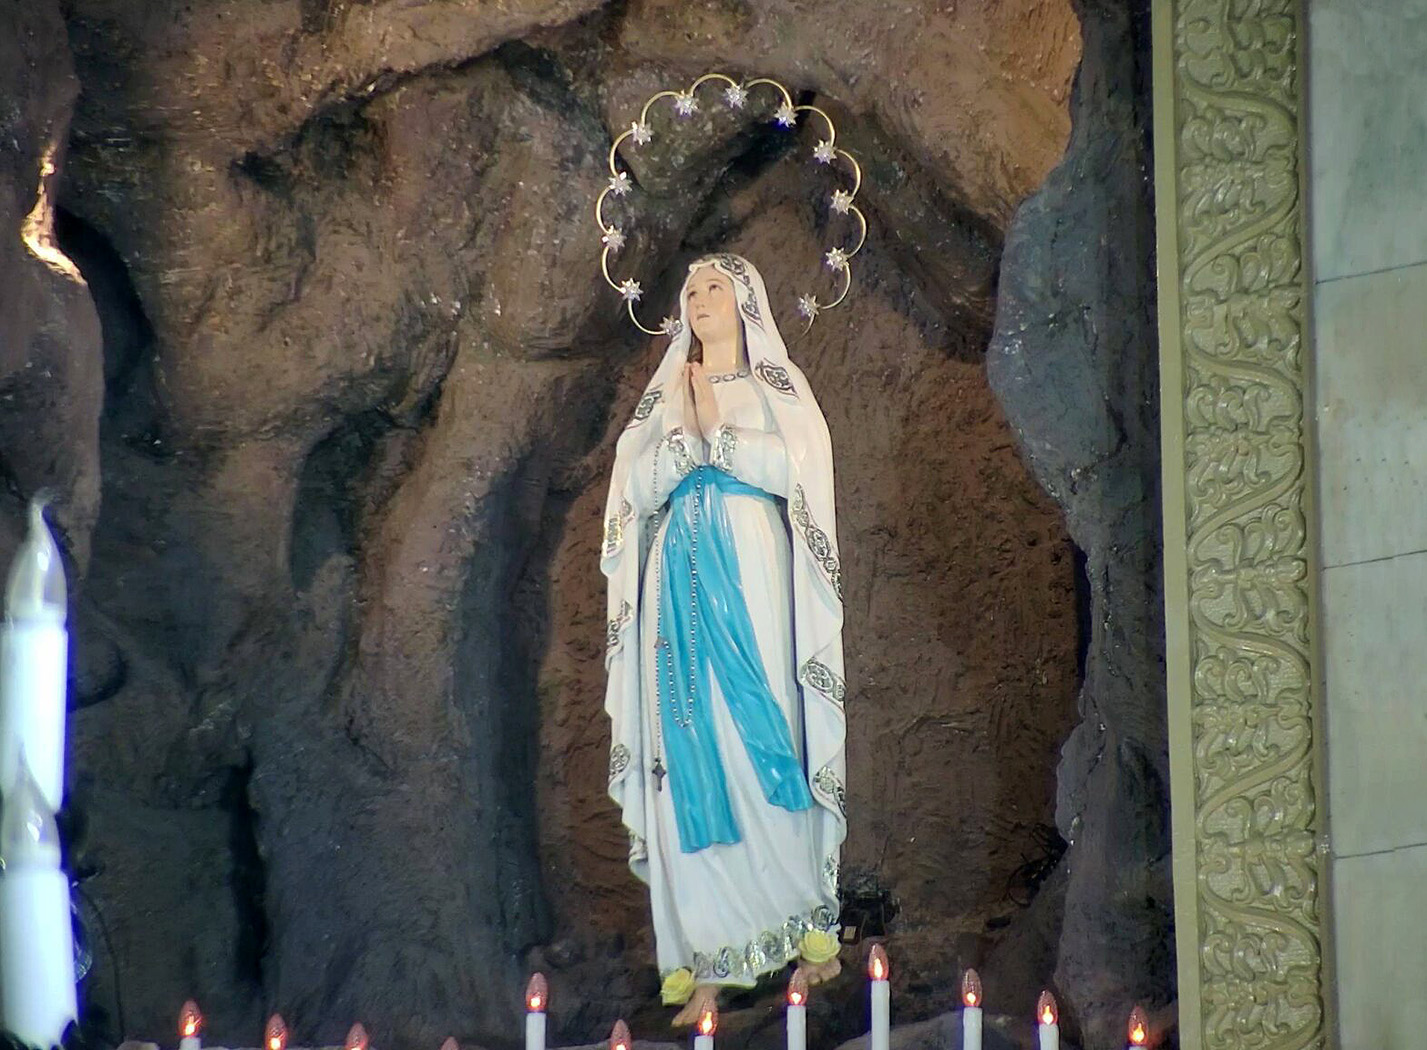 'Canonical coronation' of Our Lady of Lourdes set Aug. 22